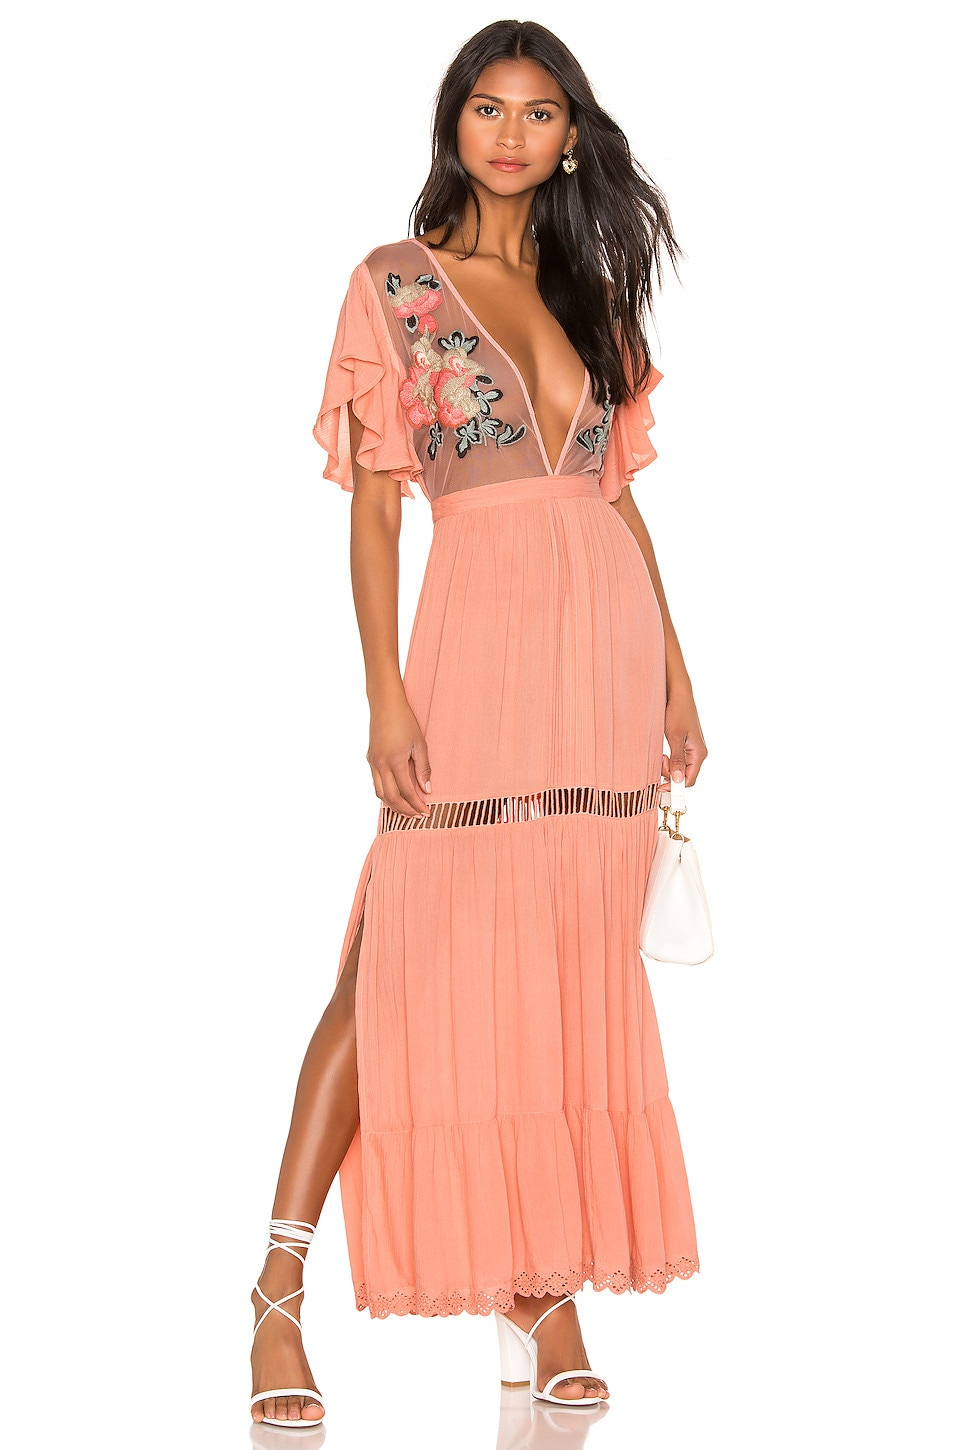 Cleobella X REVOLVE Amery Dress in Peony